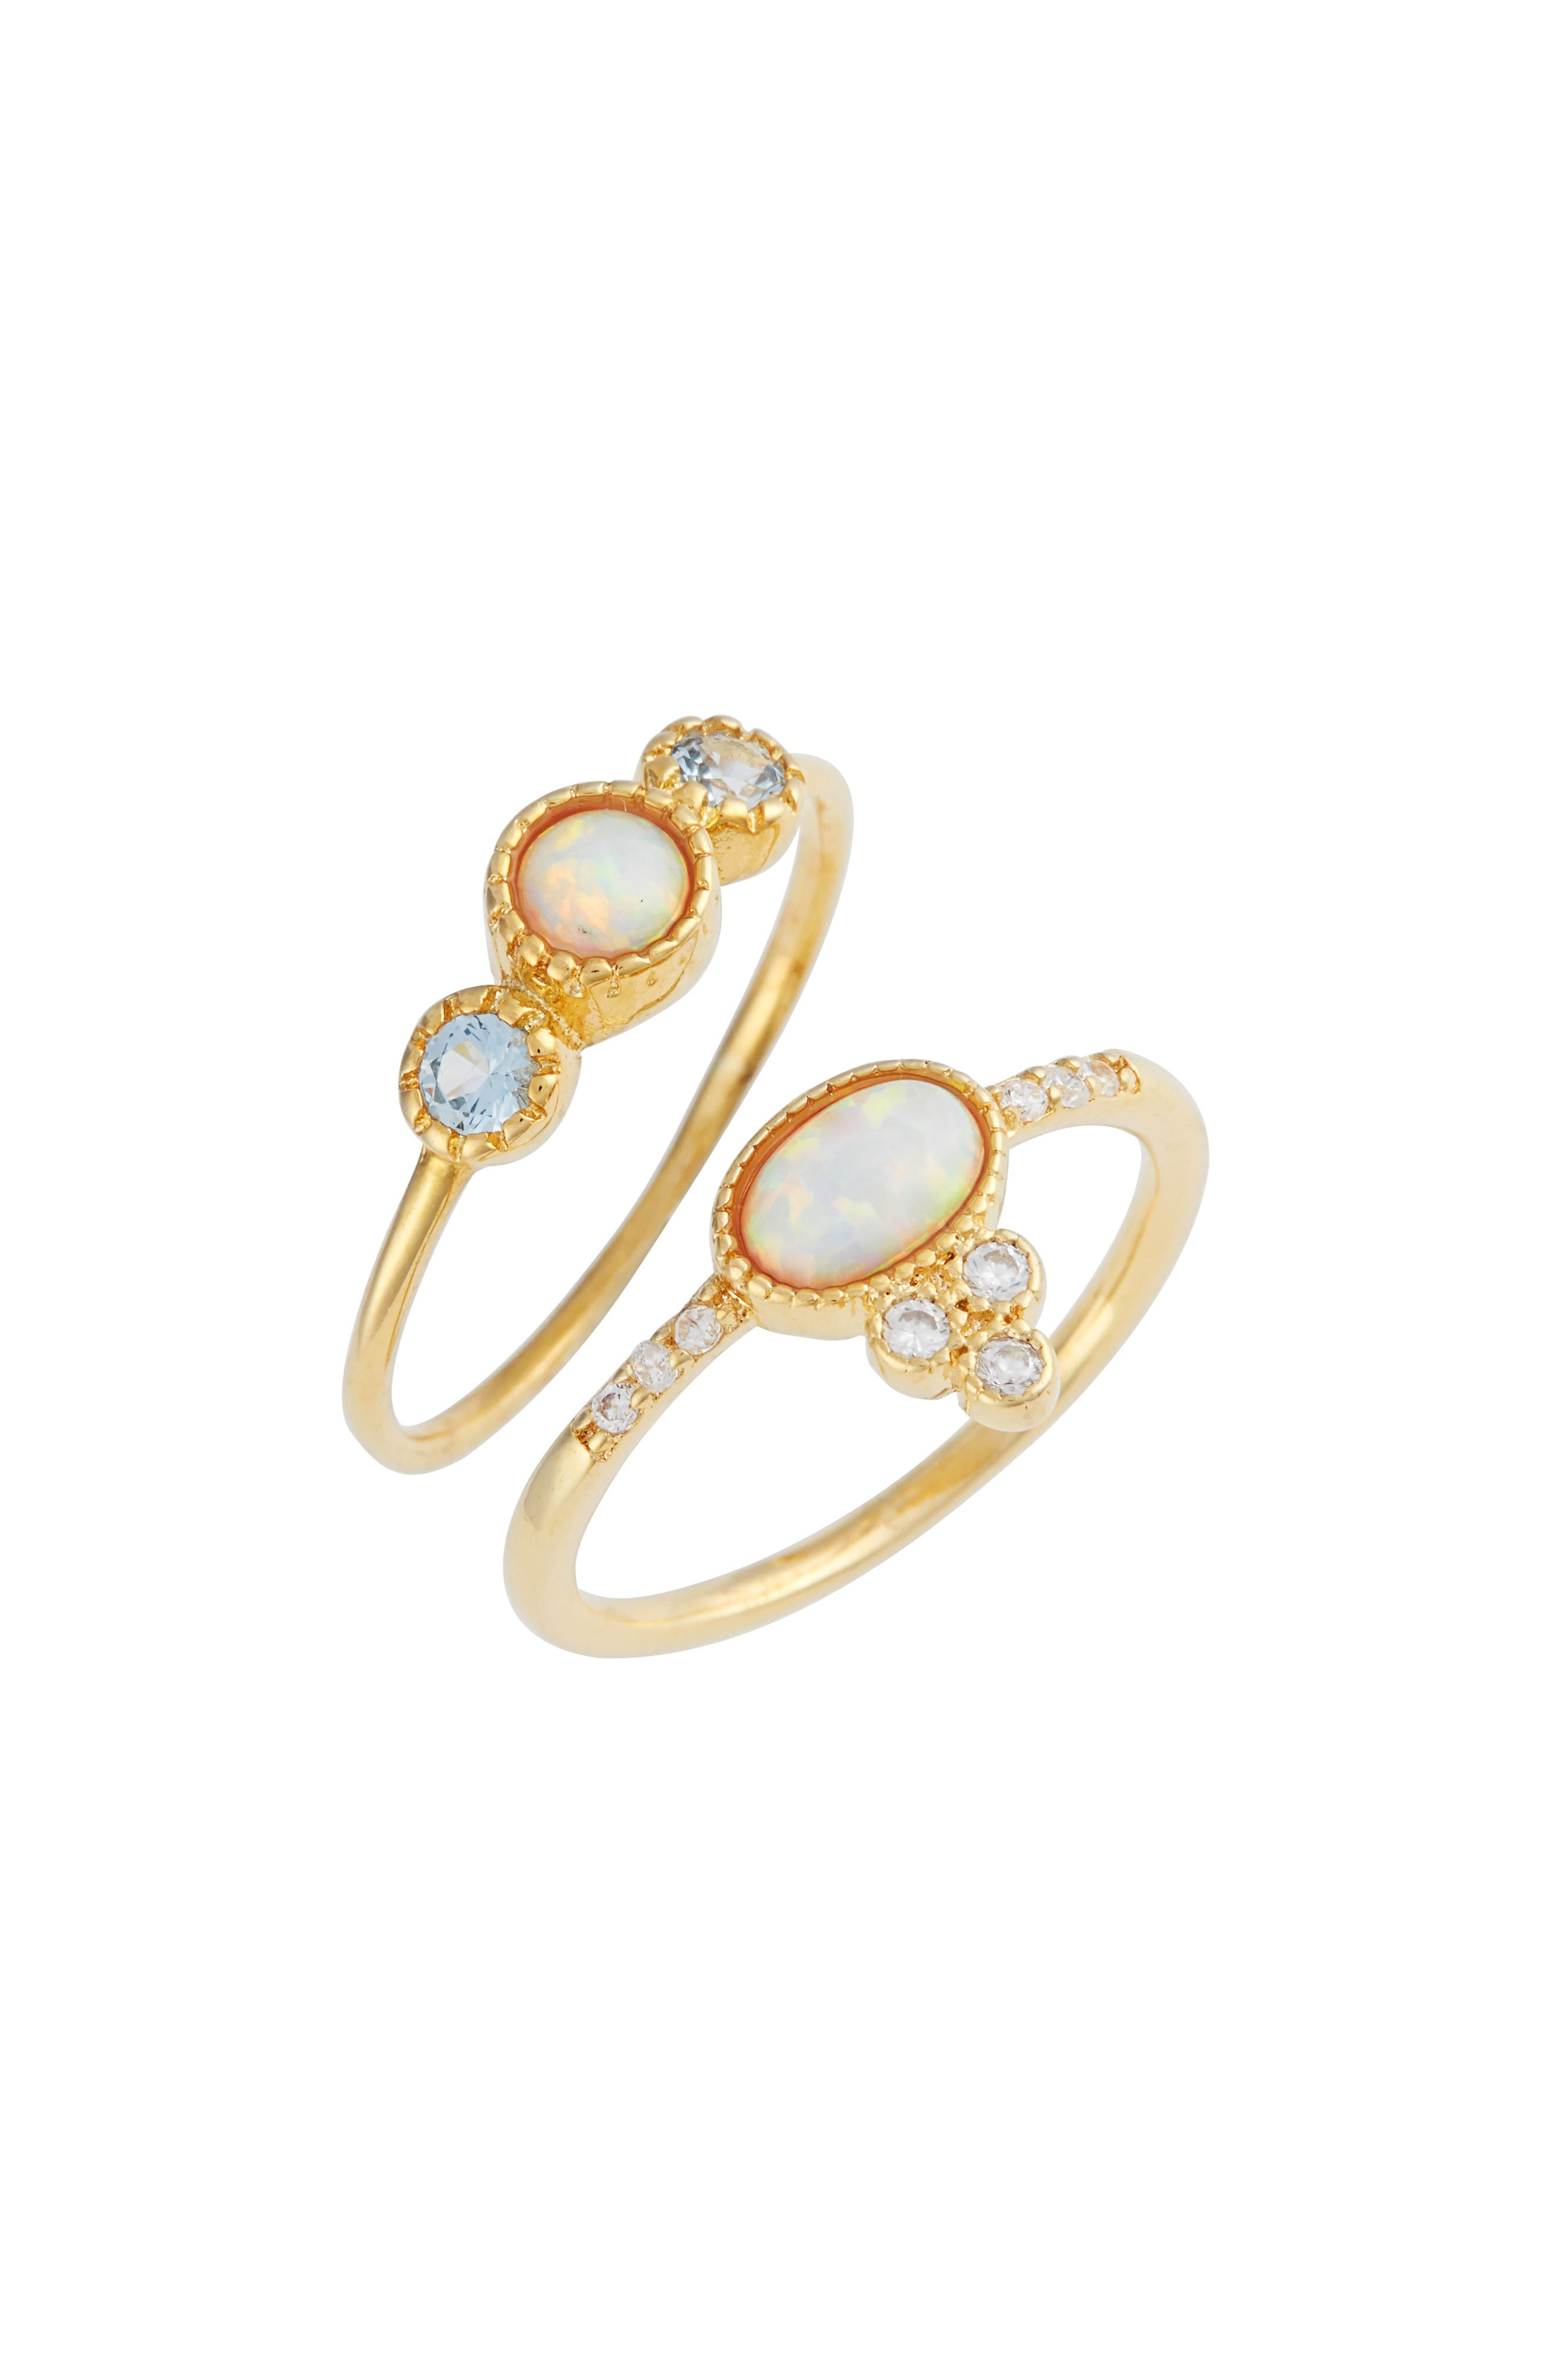 Fabiana Set of 2 Fire Opal & Crystal Rings,                         Main,                         color, Gold